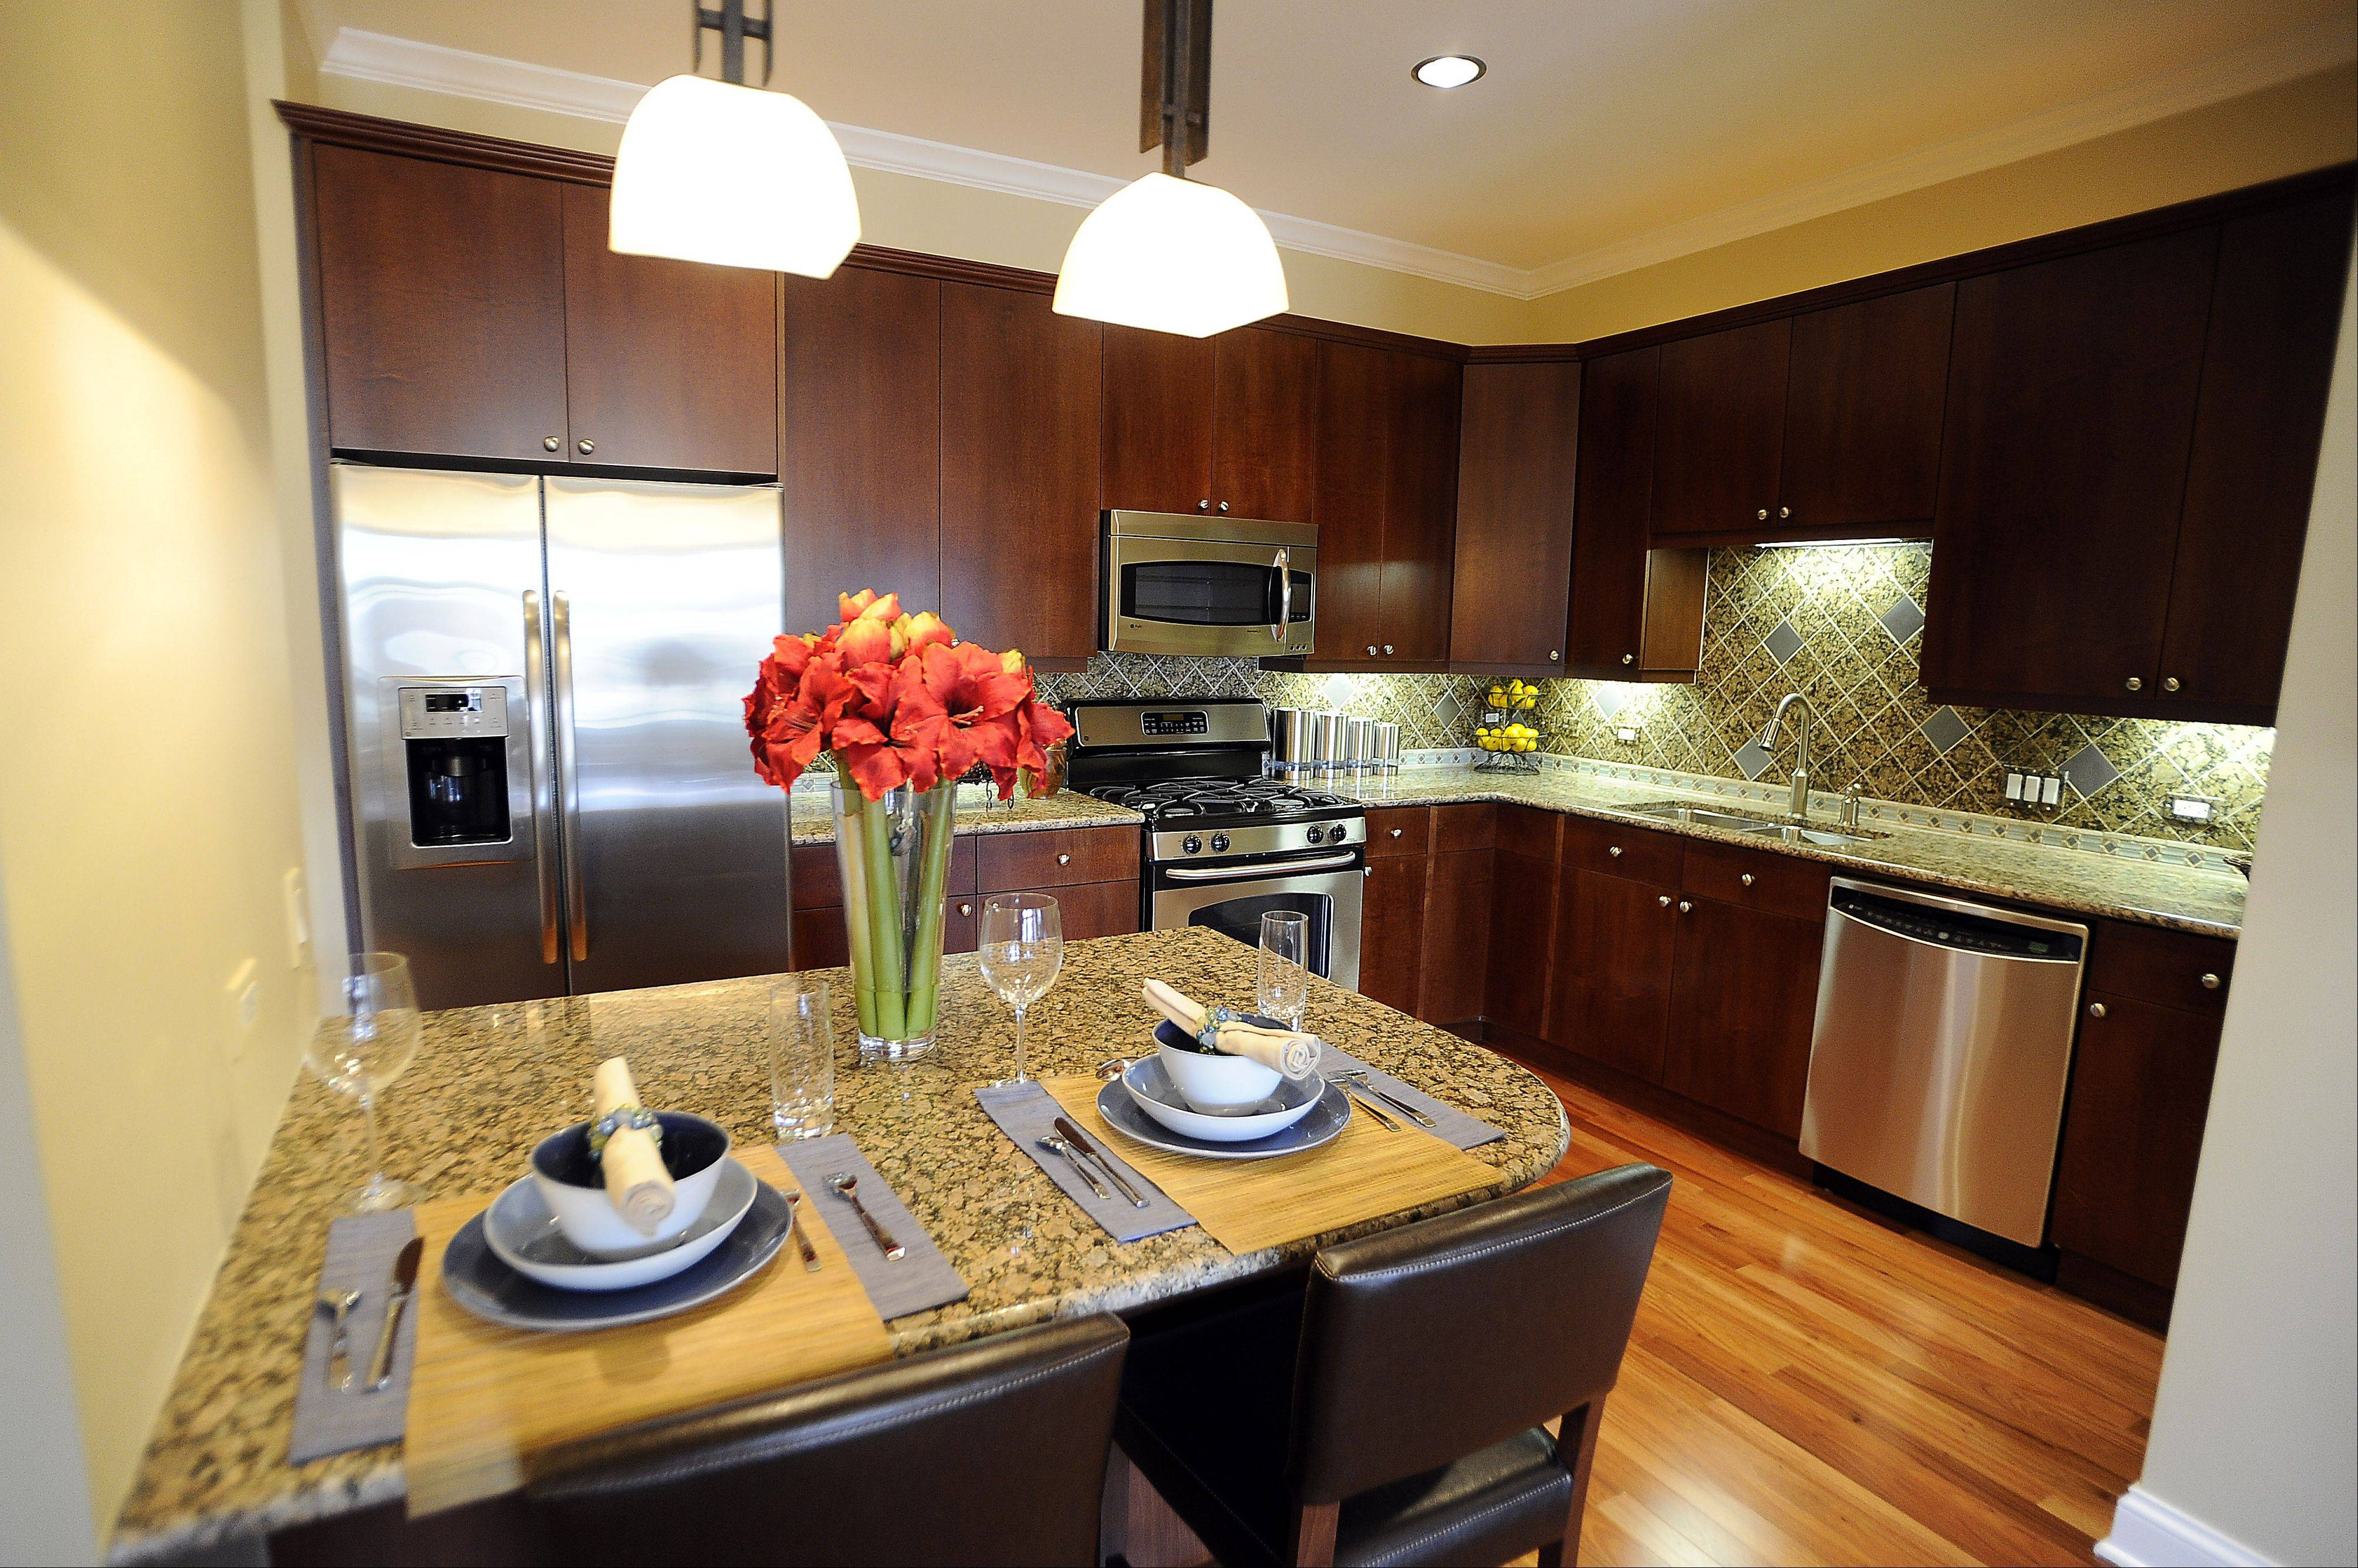 Cherry wood kitchen cabinets are shown in Prairie Park's Waterford model.